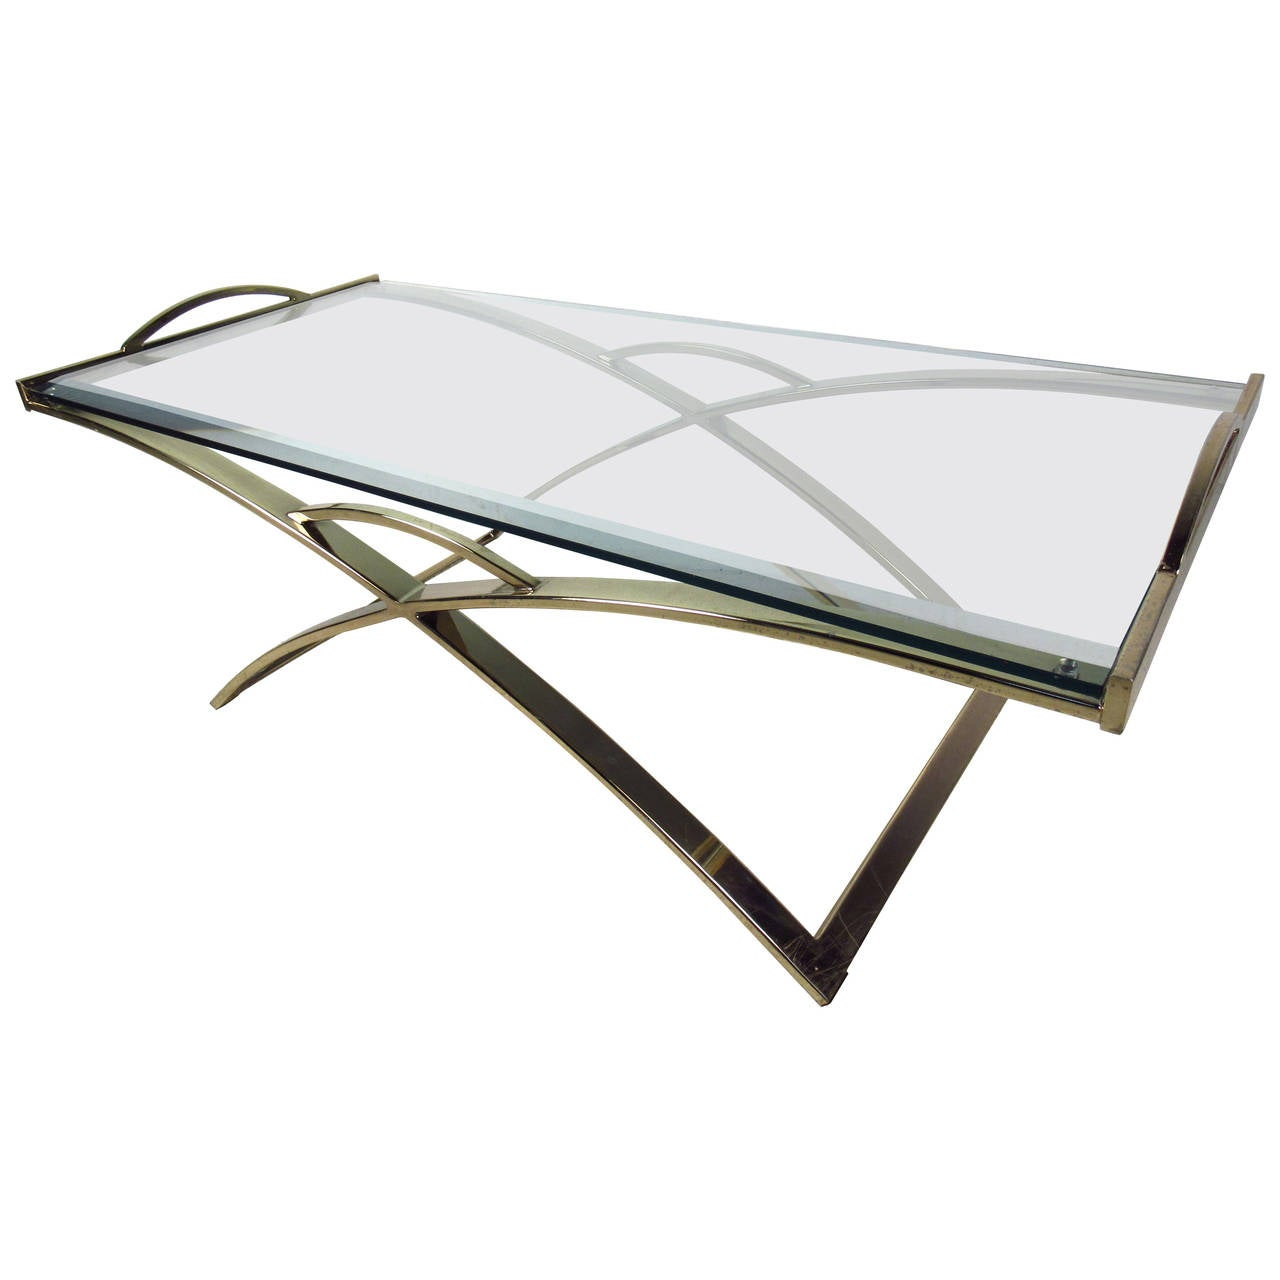 Mid Century Modern Brass Plated Coffee Table With Beveled Glass Top For Sale At 1stdibs